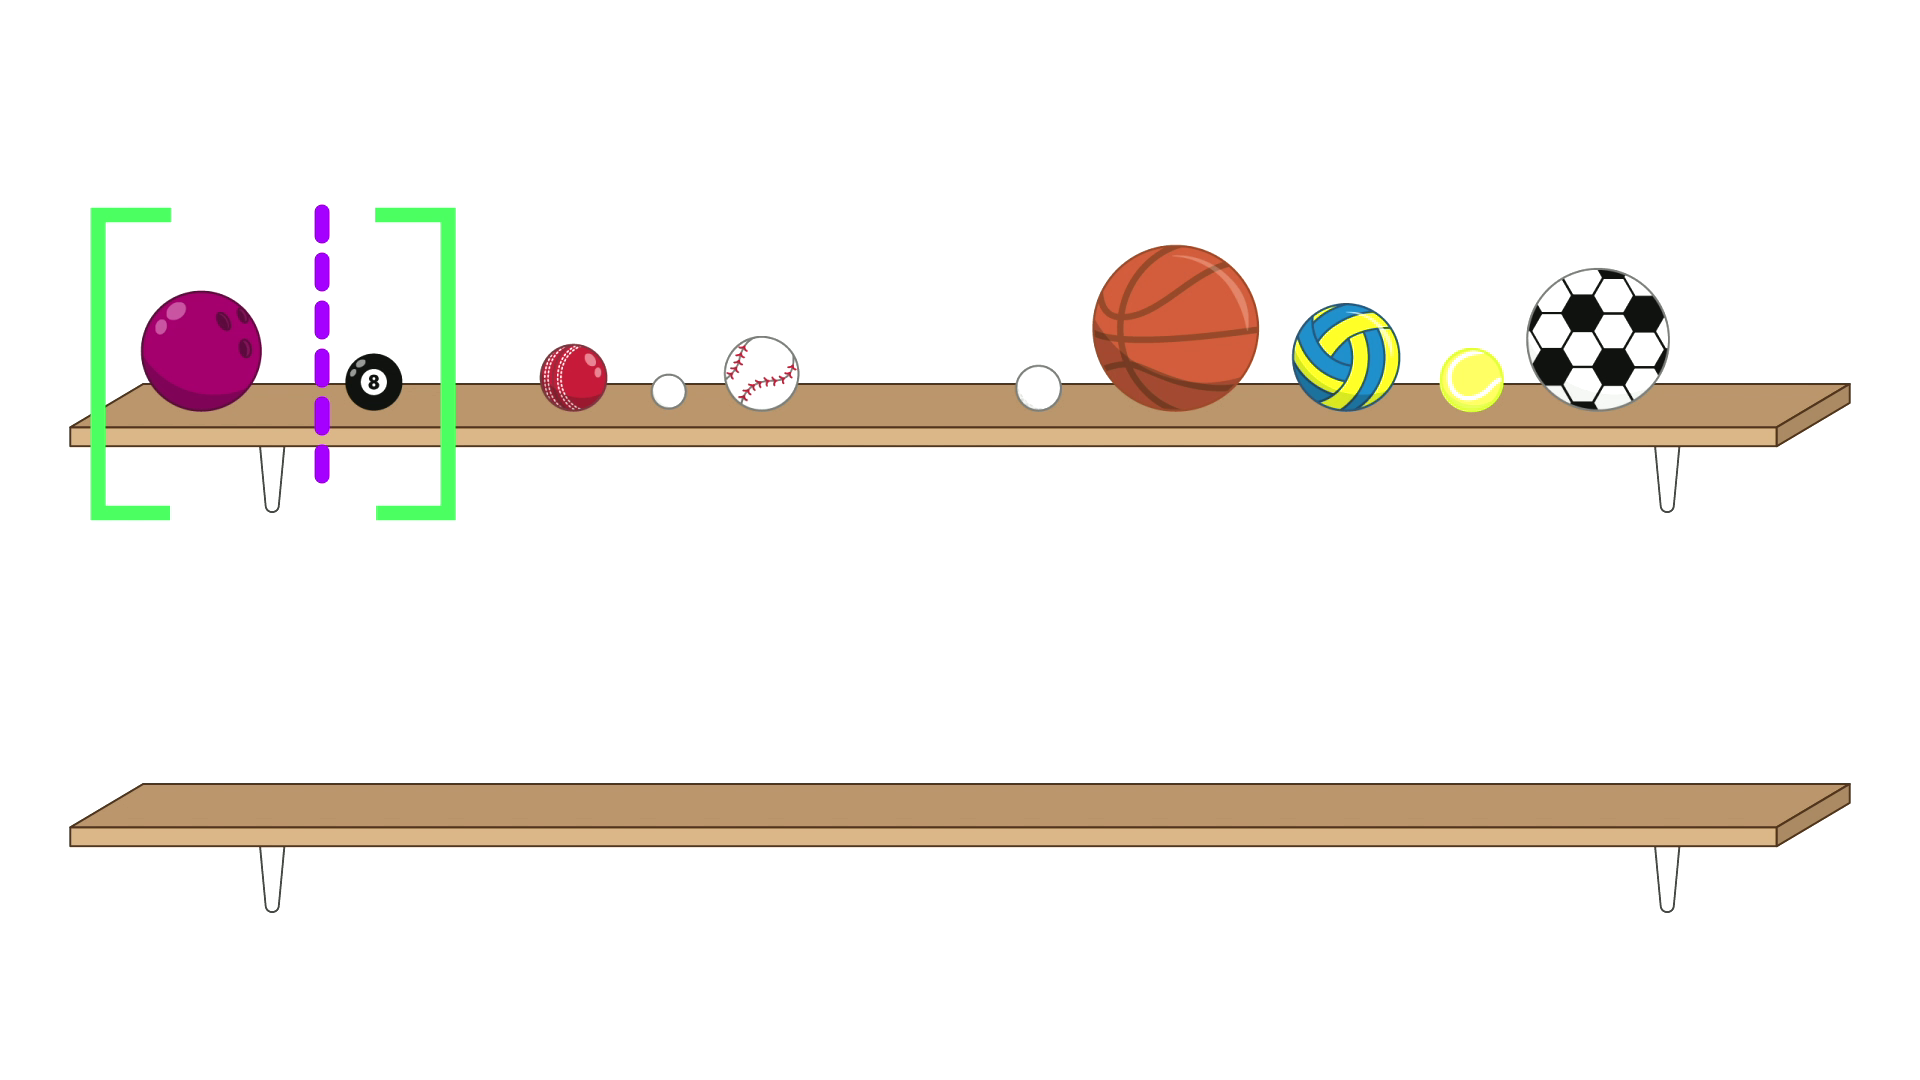 The same 10 balls on the shelf. A pair of green brackets surround the first two balls (a bowling ball and a pool ball), and there is a dahed purple line separating them. There is an empty shelf below.